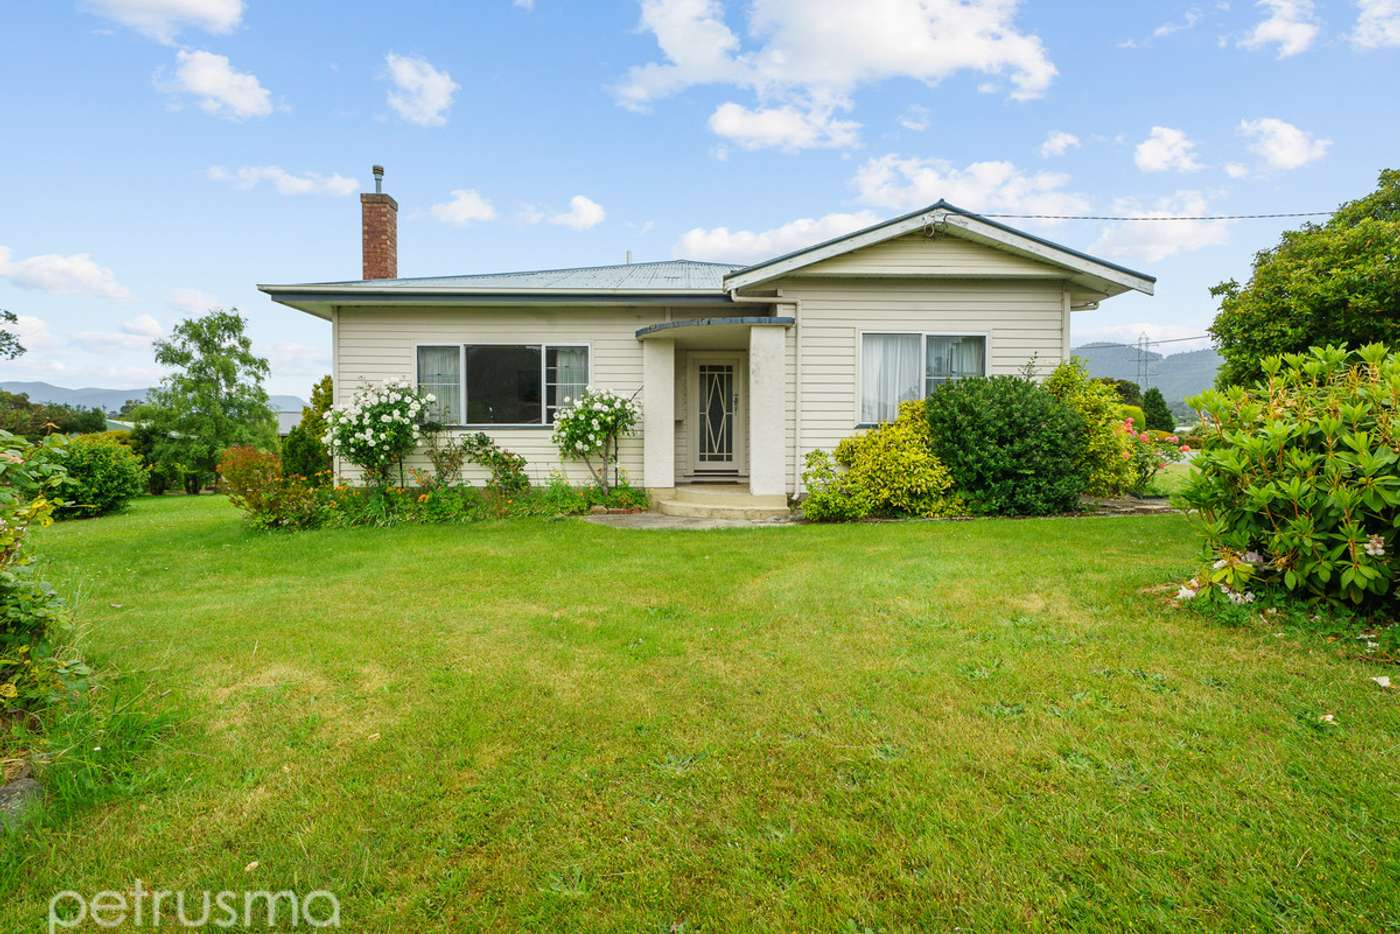 Main view of Homely house listing, 34 Shield Street, Huonville TAS 7109